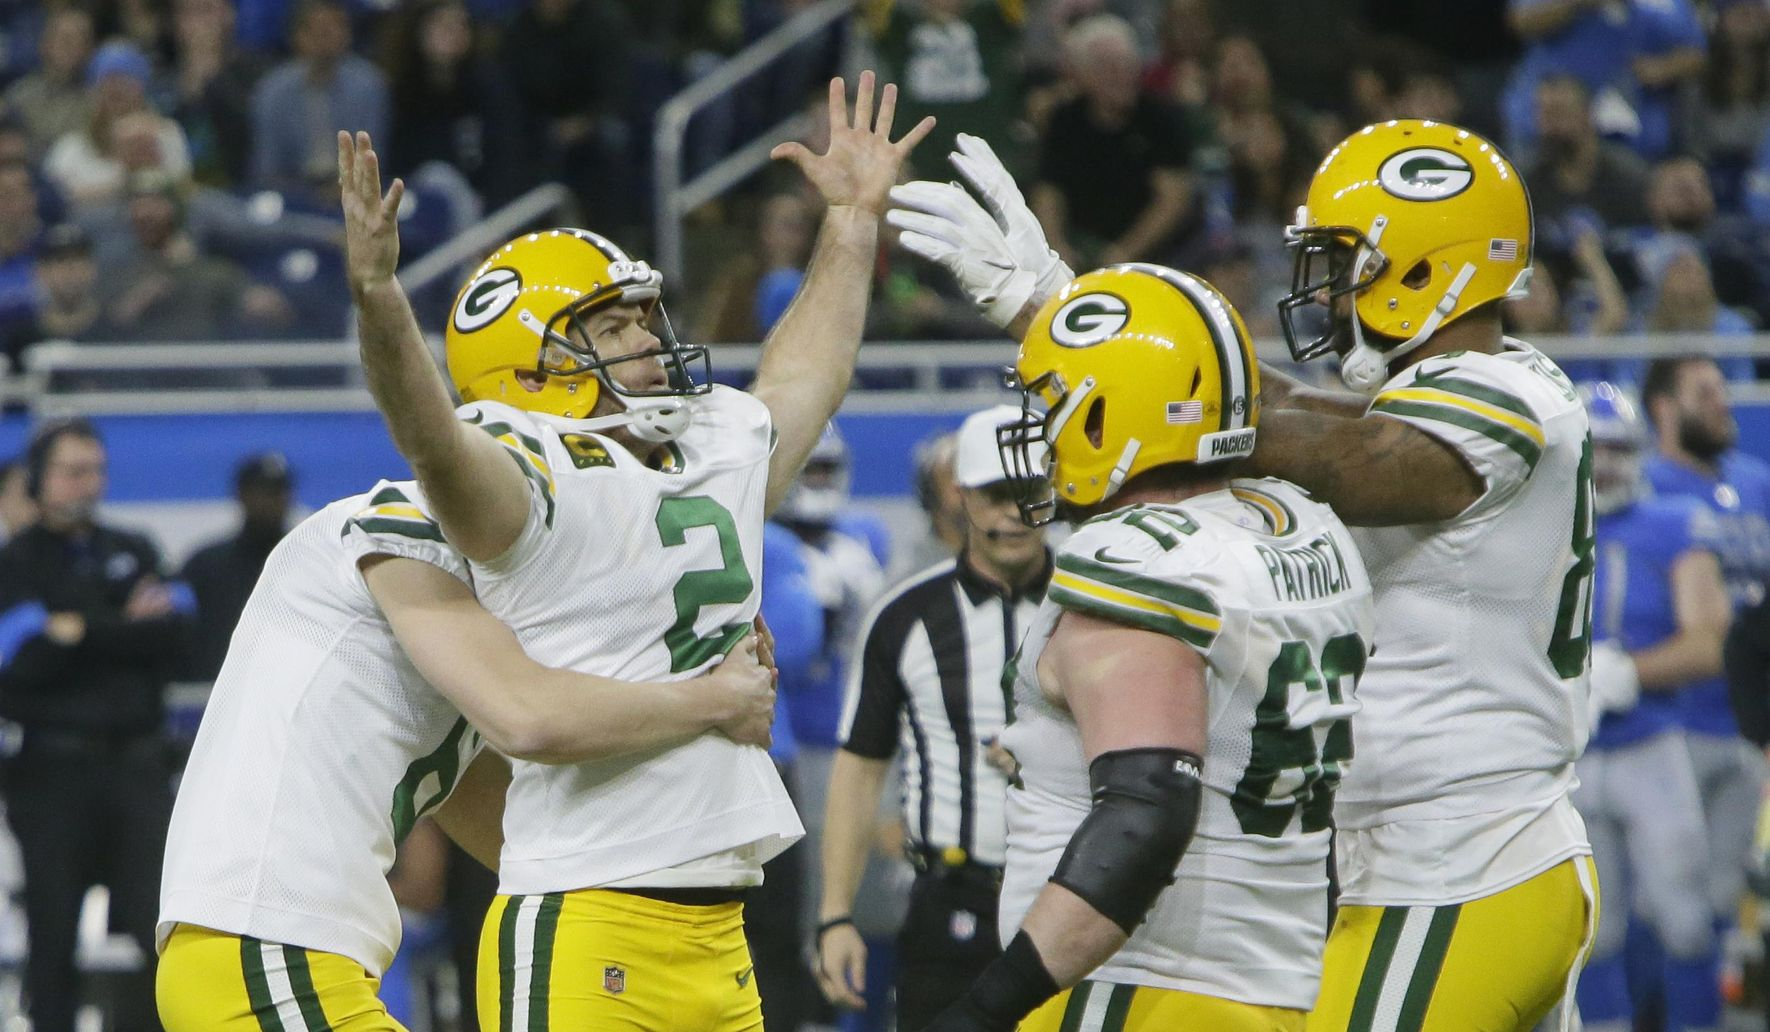 Packers_lions_football_97985_c0-113-2712-1694_s1770x1032